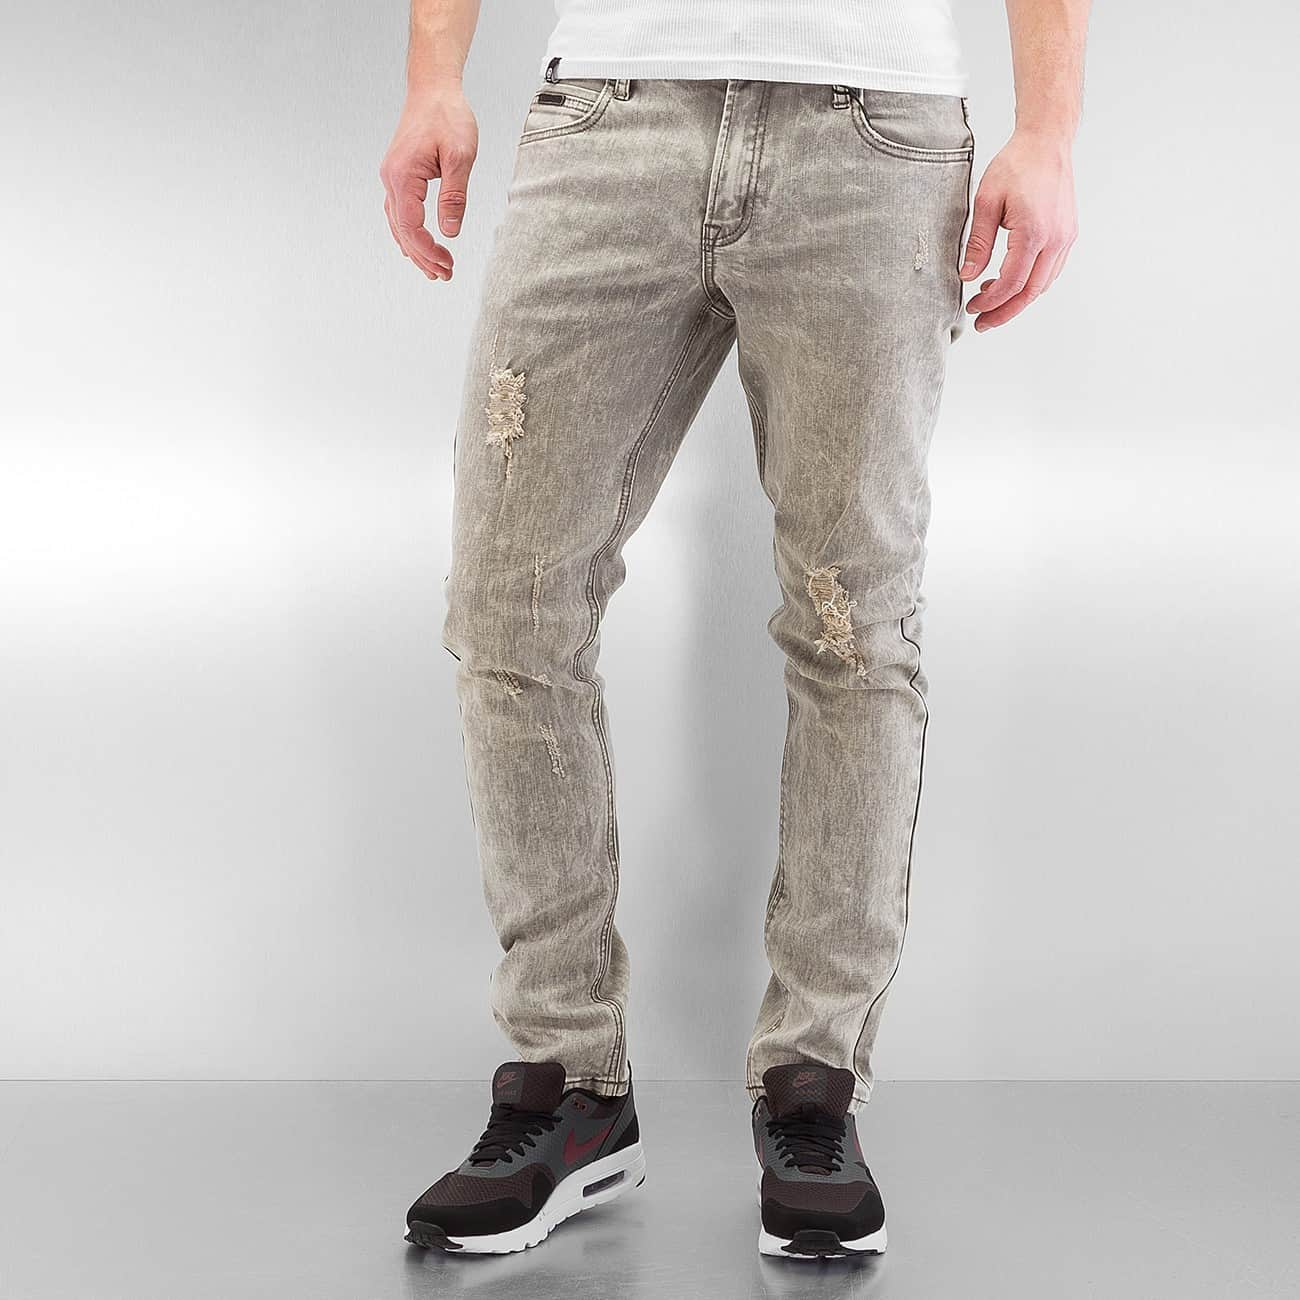 streetwear fashion online shop rocawear m nner skinny jeans wash in grau auf rechnung. Black Bedroom Furniture Sets. Home Design Ideas